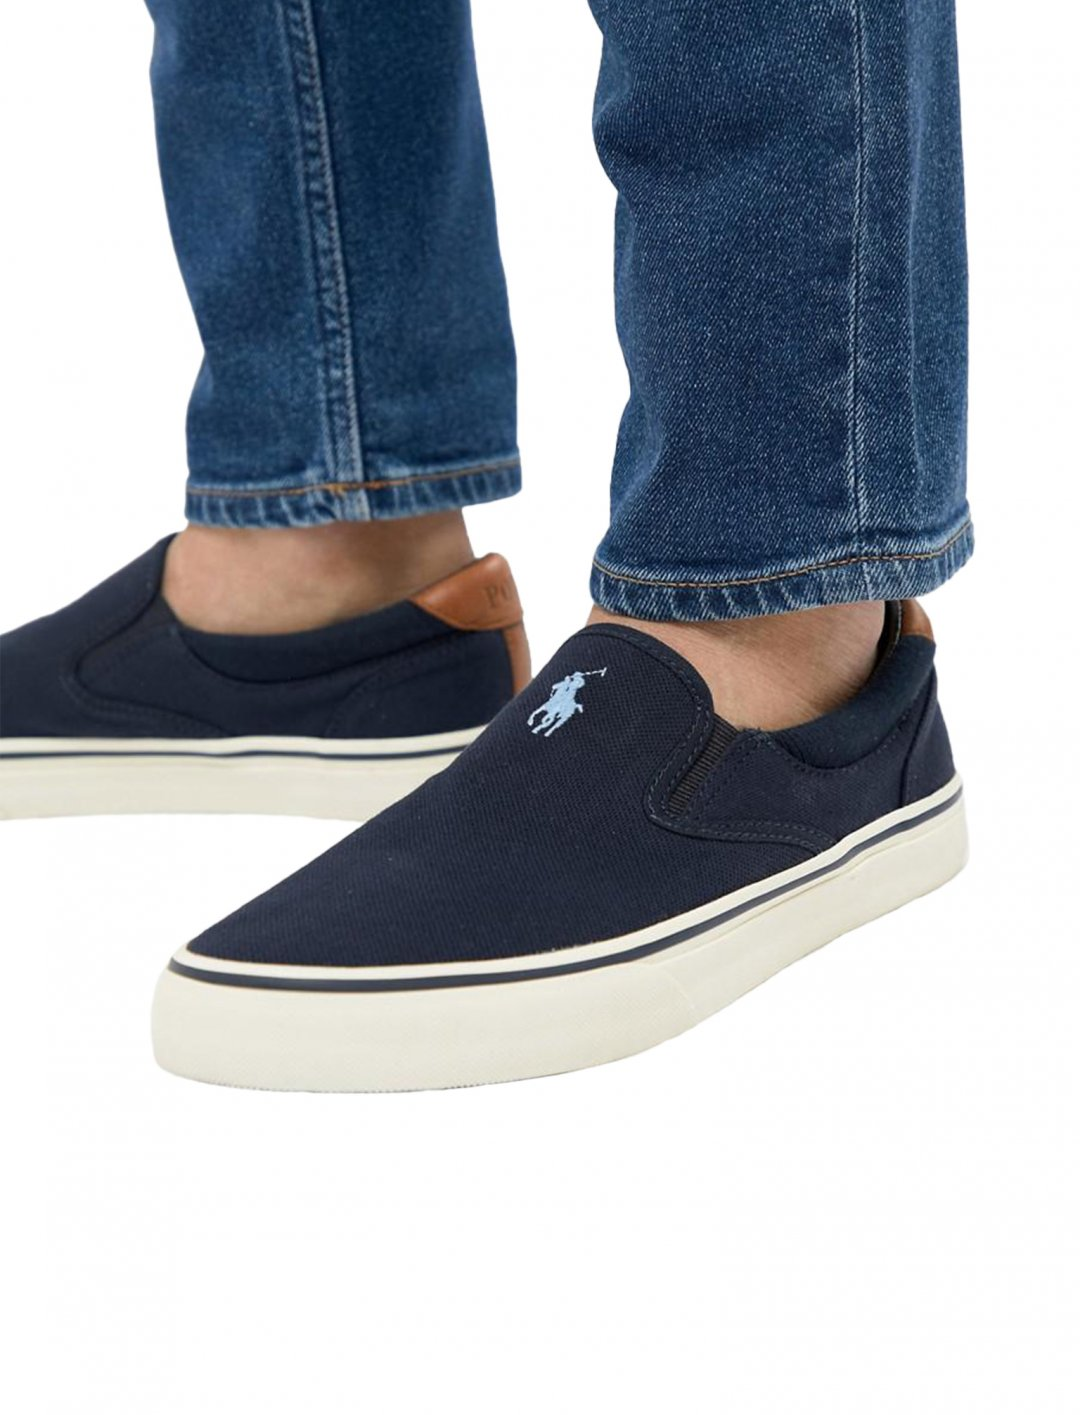 """Polo Ralph Lauren Slip On Plimsolls {""""id"""":12,""""product_section_id"""":1,""""name"""":""""Shoes"""",""""order"""":12} Polo Ralph Lauren"""